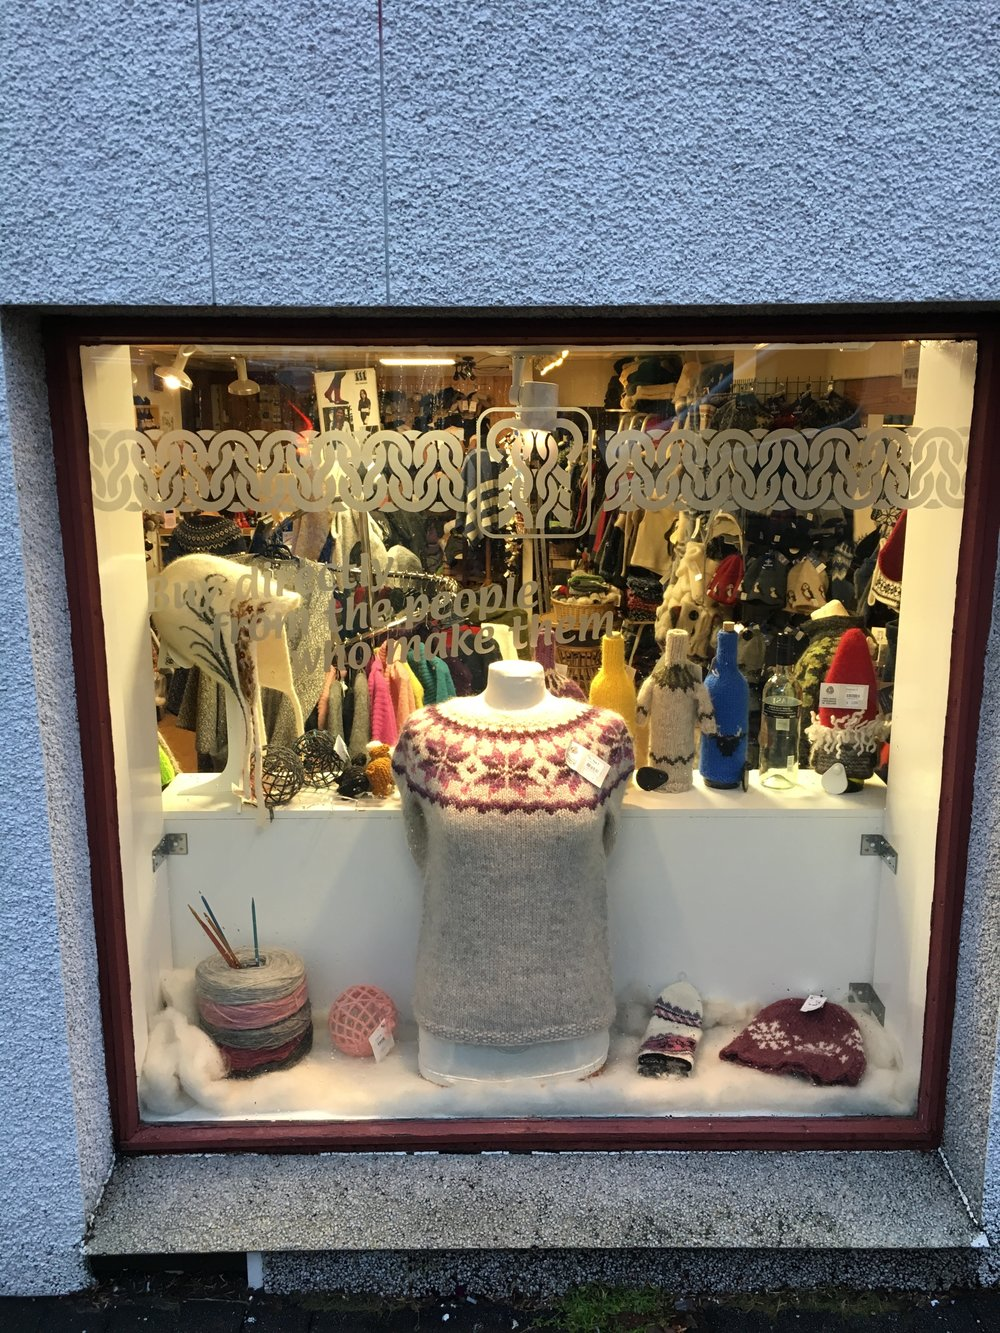 Our favorite stop for woolens, Icelandic Knitters Association, with their shelves stuffed full of local products, handmade by local people! There are sweaters for you, your dog, even your wine bottles!